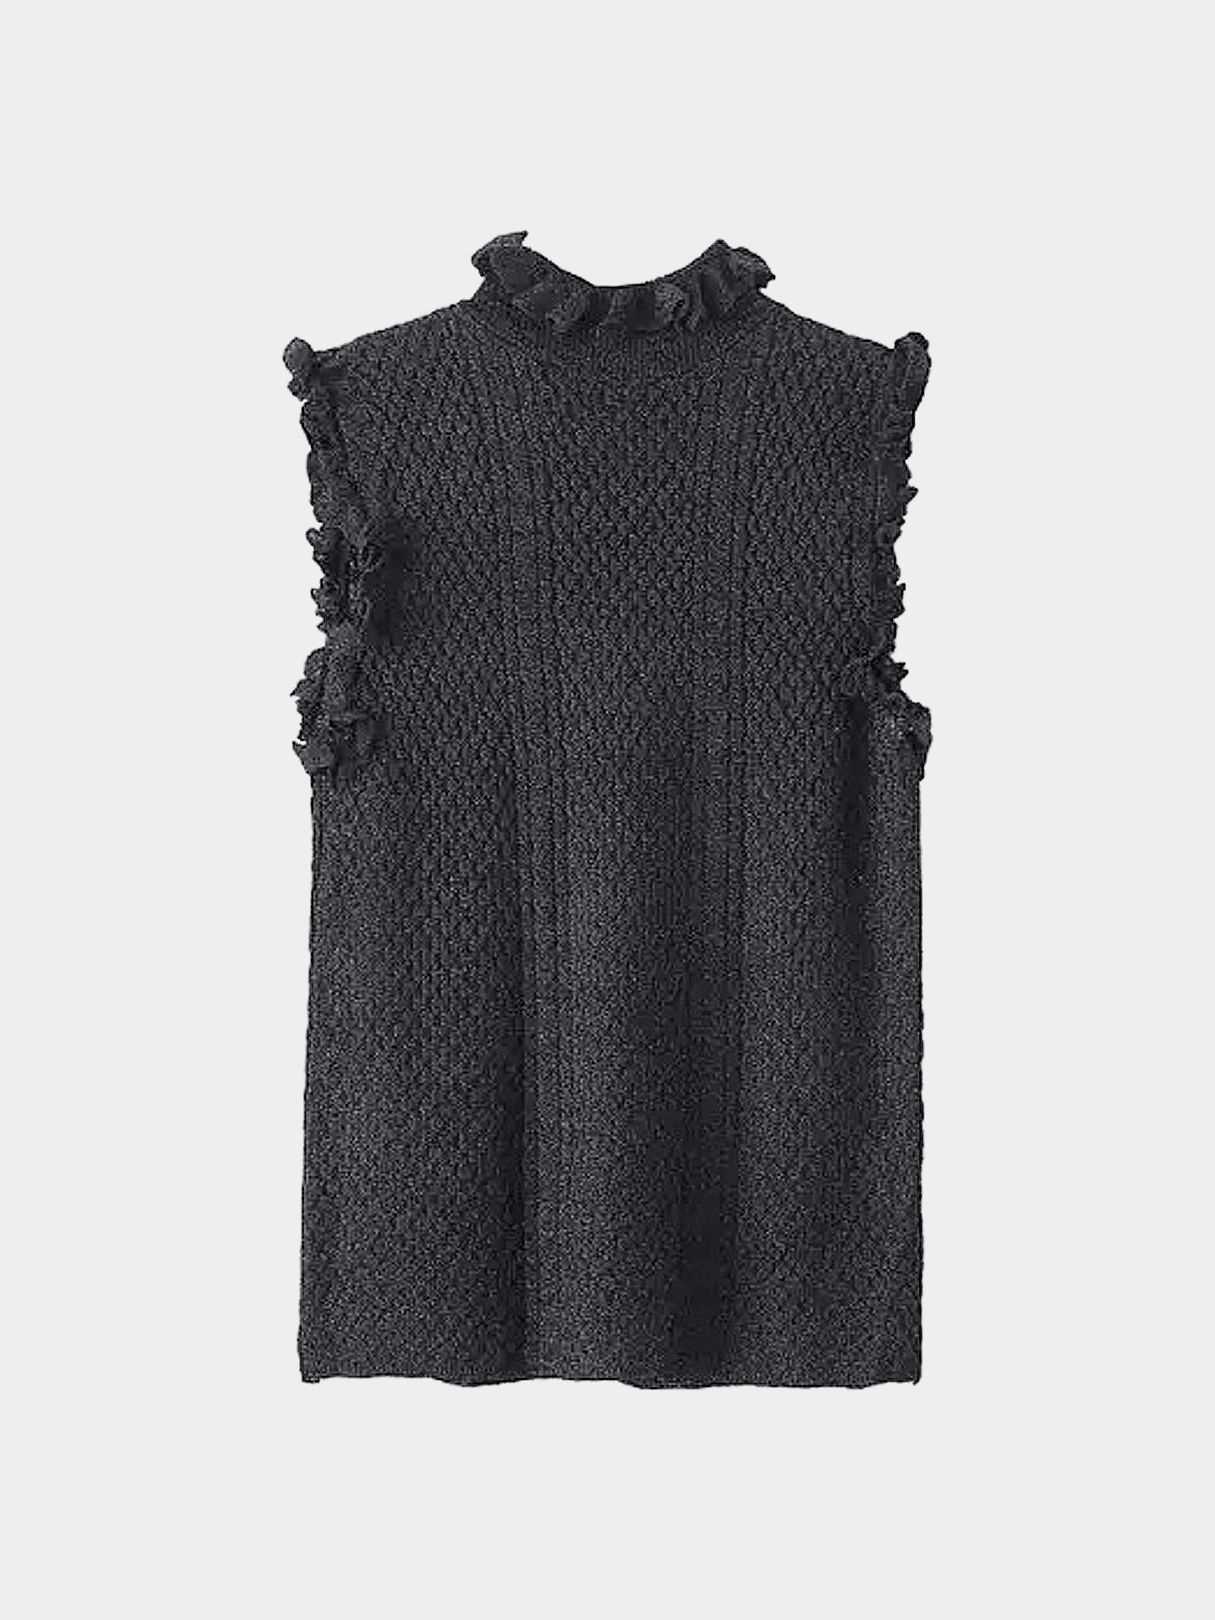 Black High Neck Sleeveless Top with Frill Detail